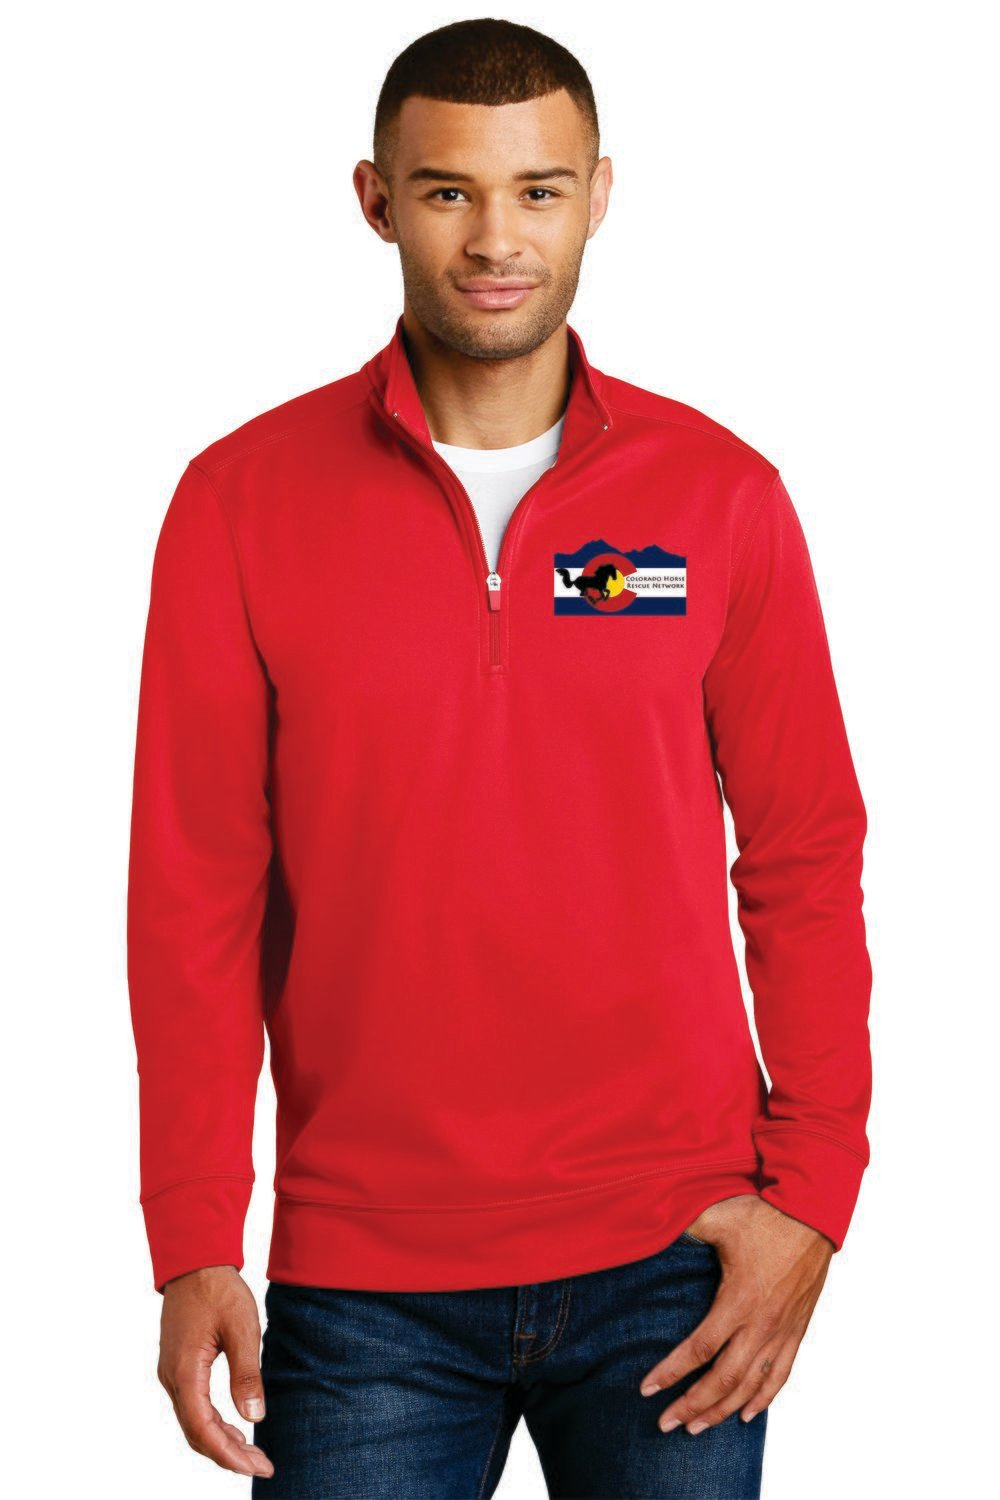 Colorado Horse Rescue Network 1/4 Zip Embroidered